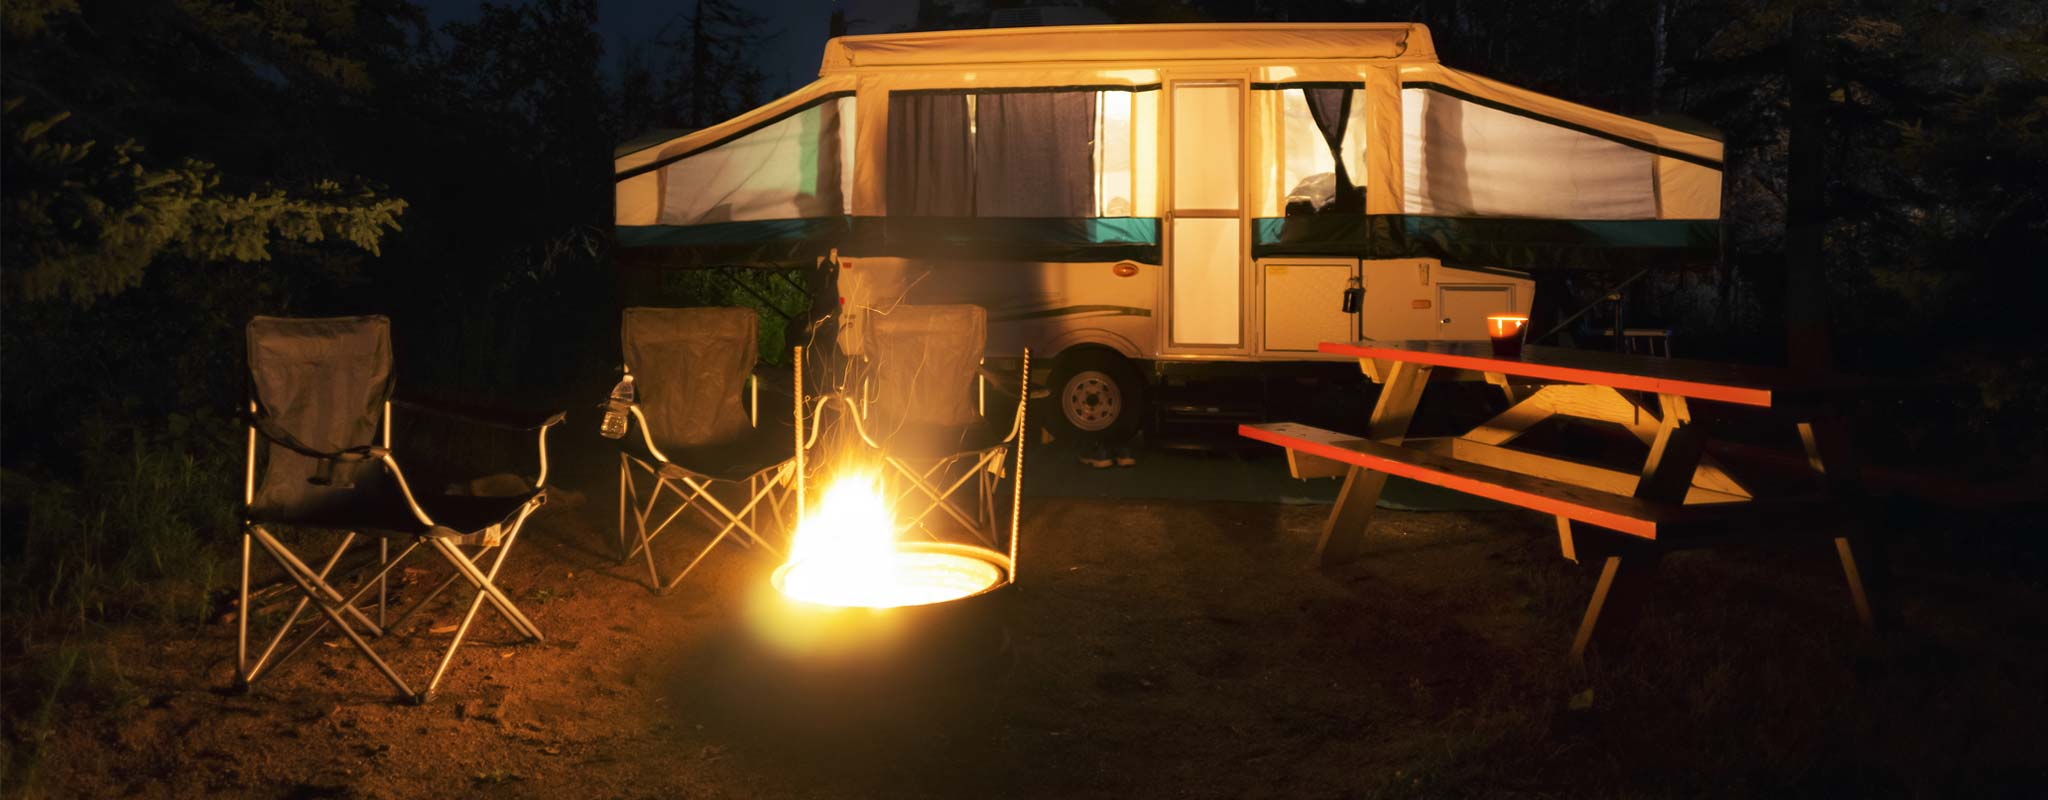 A pop-up tent trailer with it's lights on next to a campfire.